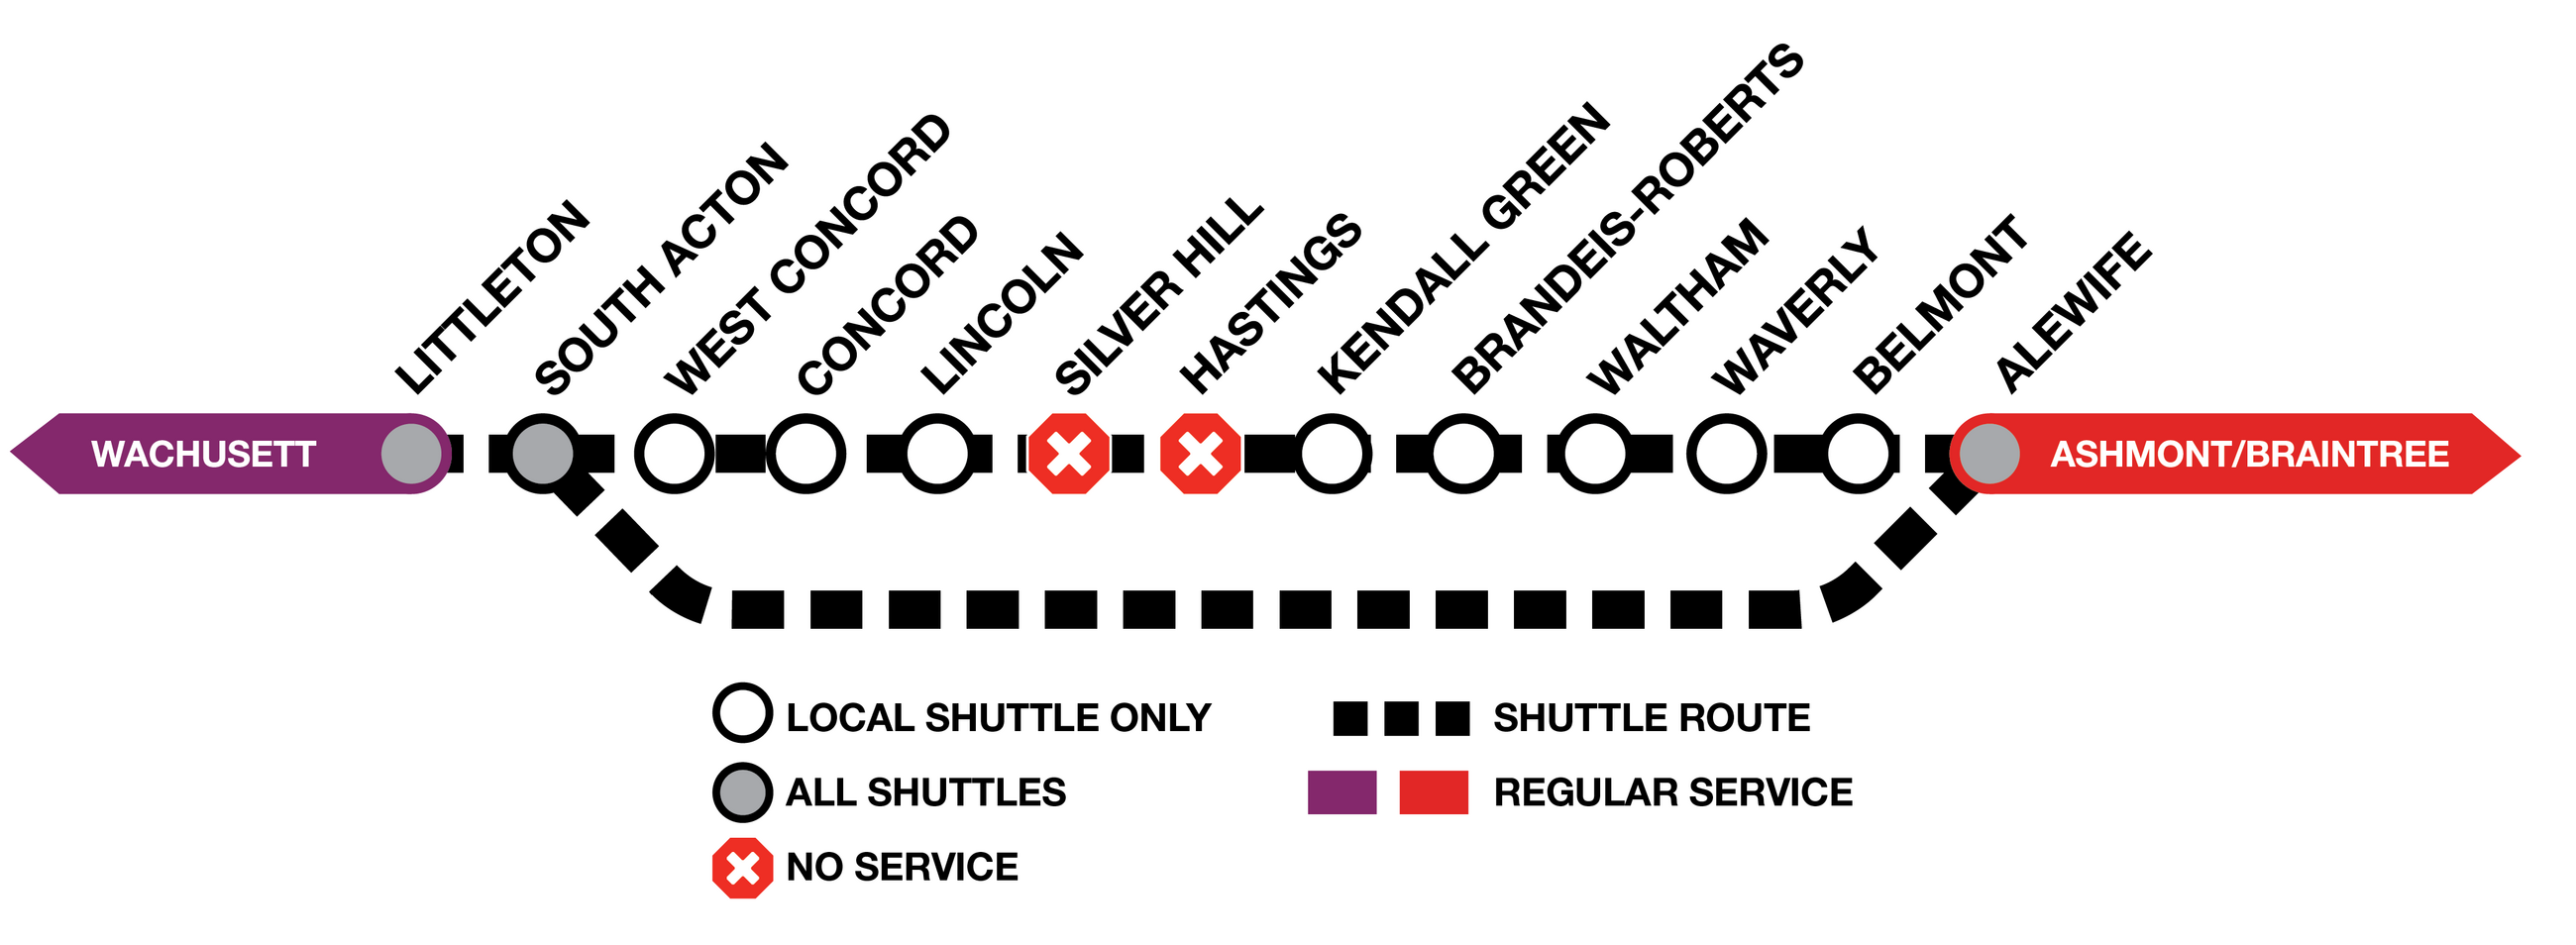 Fitchburg Line service is replaced by bus shuttle. Local shuttles serve Alewife, Belmont, Waverly, Waltham, Brandeis-Roberts, Kendall Green, Lincoln, Concord, West Concord, South Acton, and Littleton (no service at Hastings or Silver Hill). Express shuttles servie Alewife, South Acton, and Littleton.